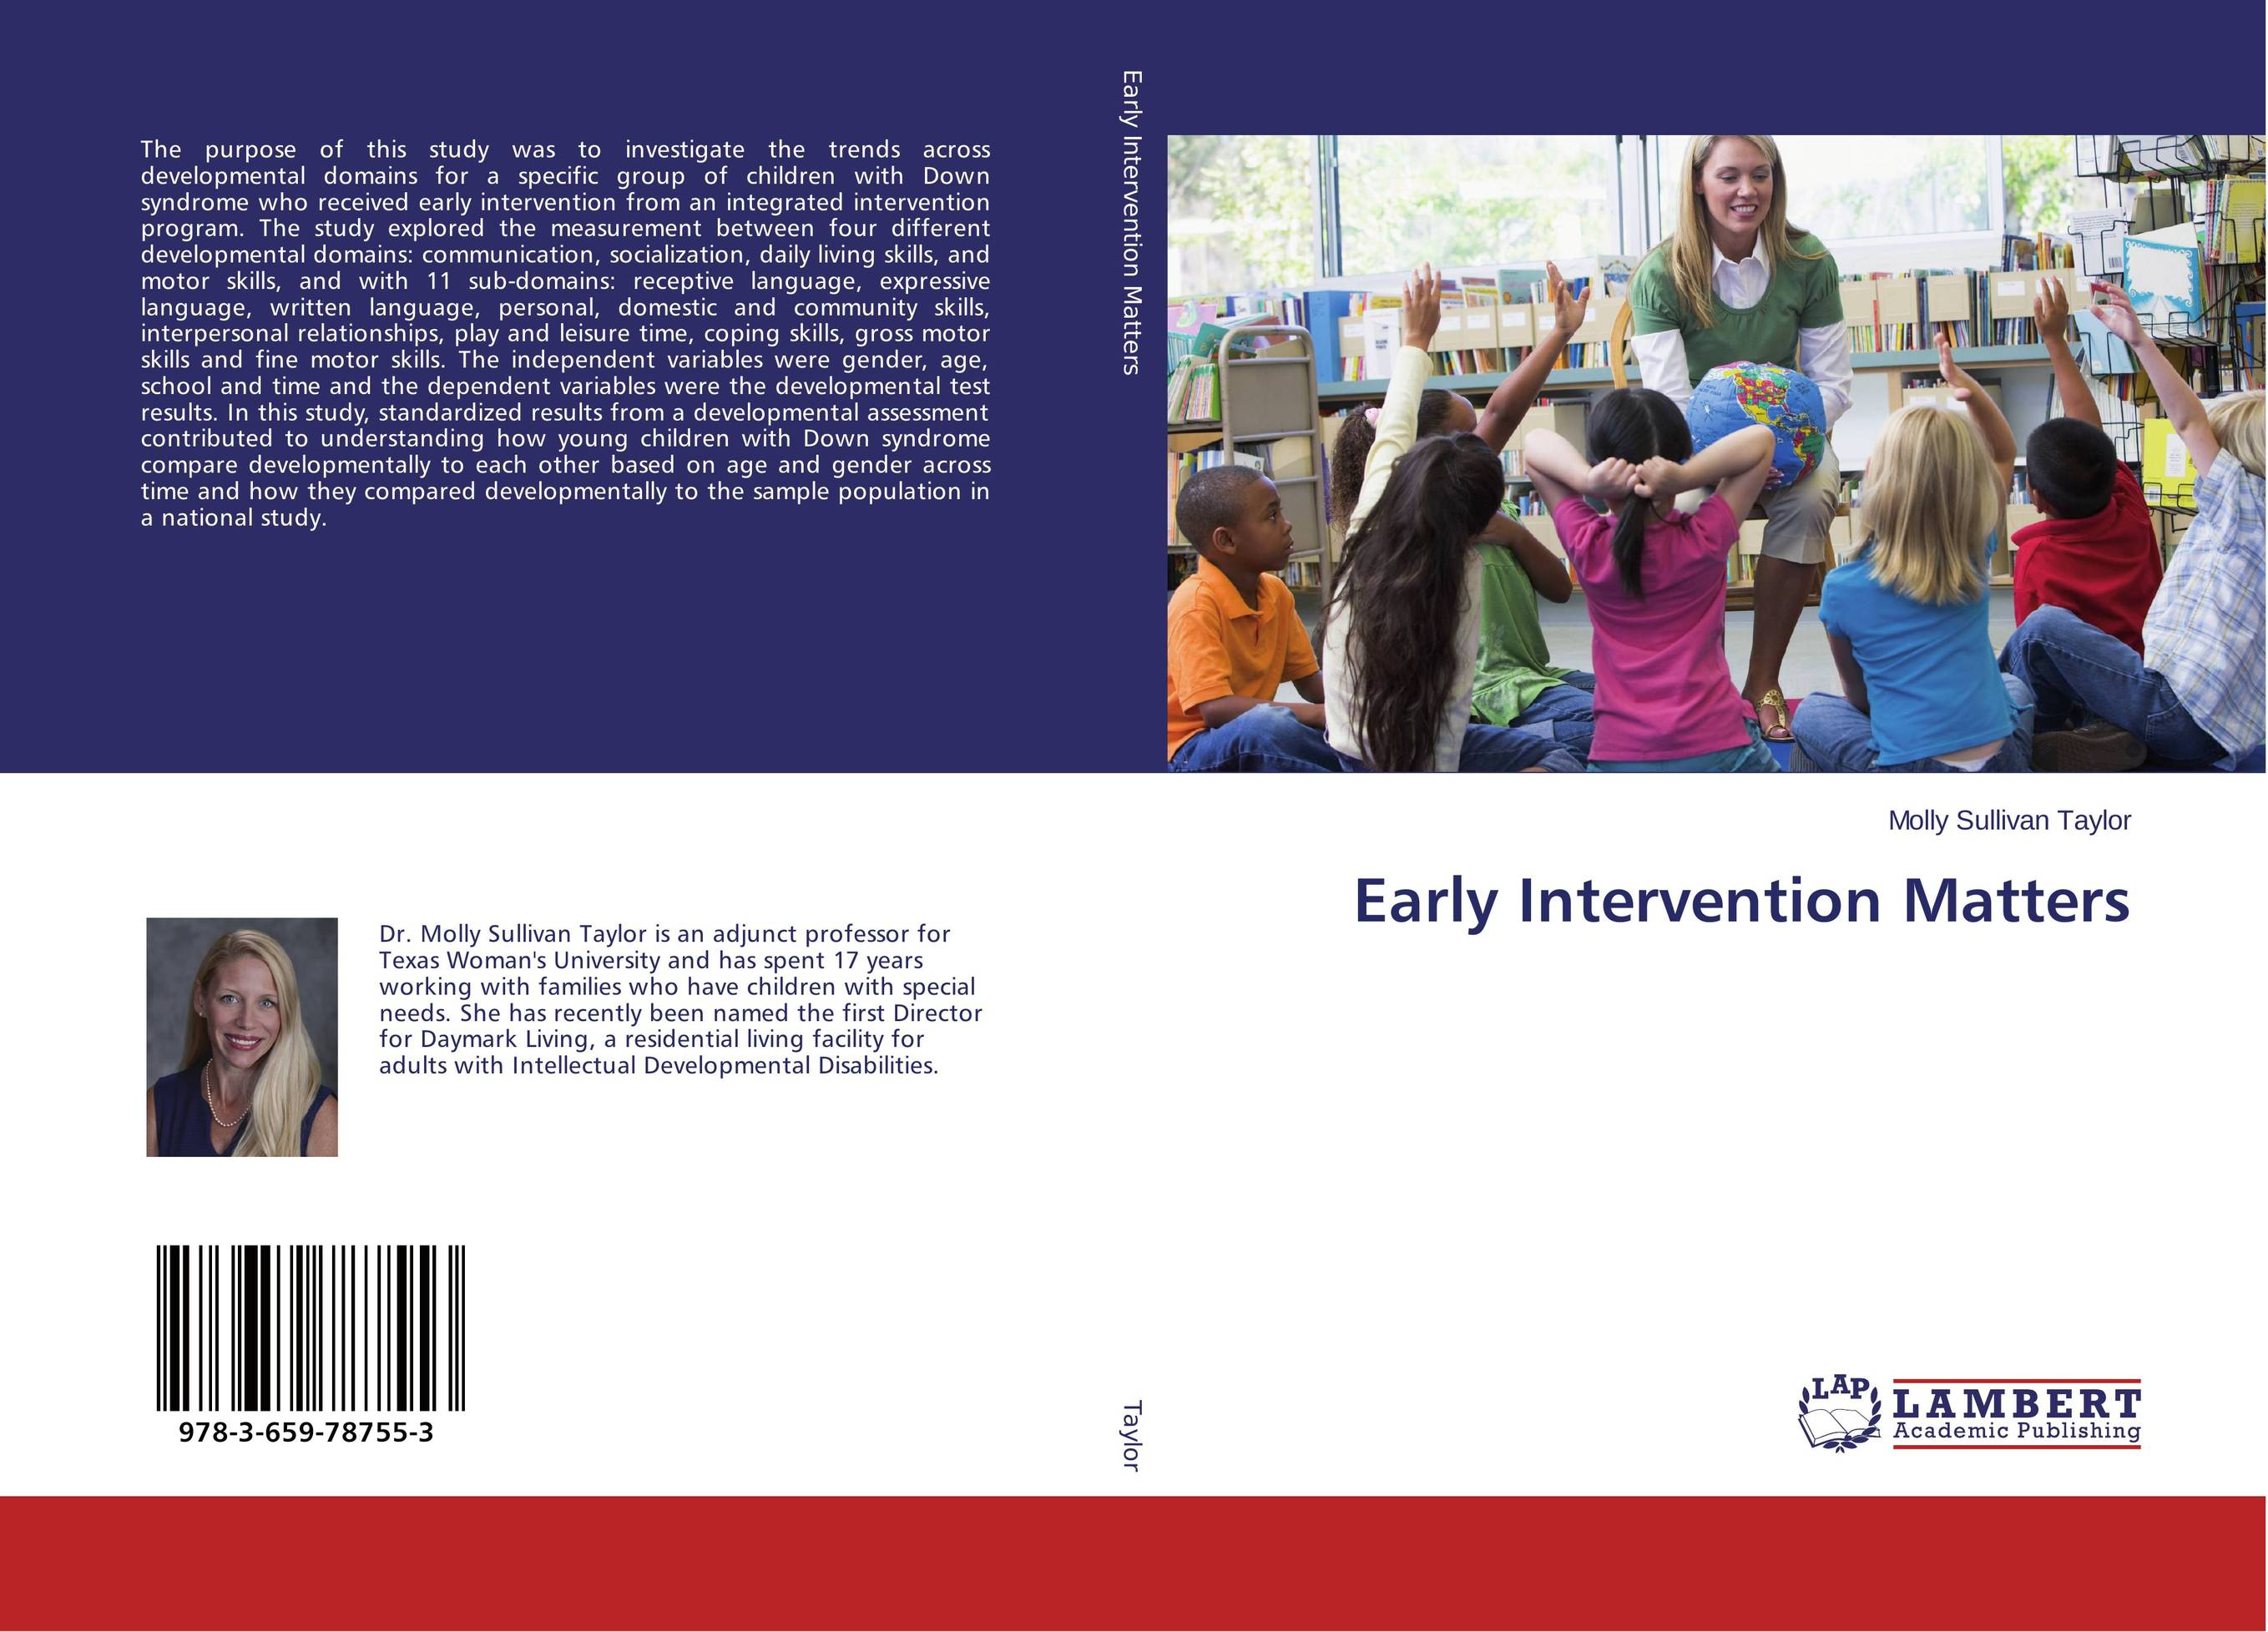 Early Intervention Matters hormonal key players for obesity in children with down syndrome